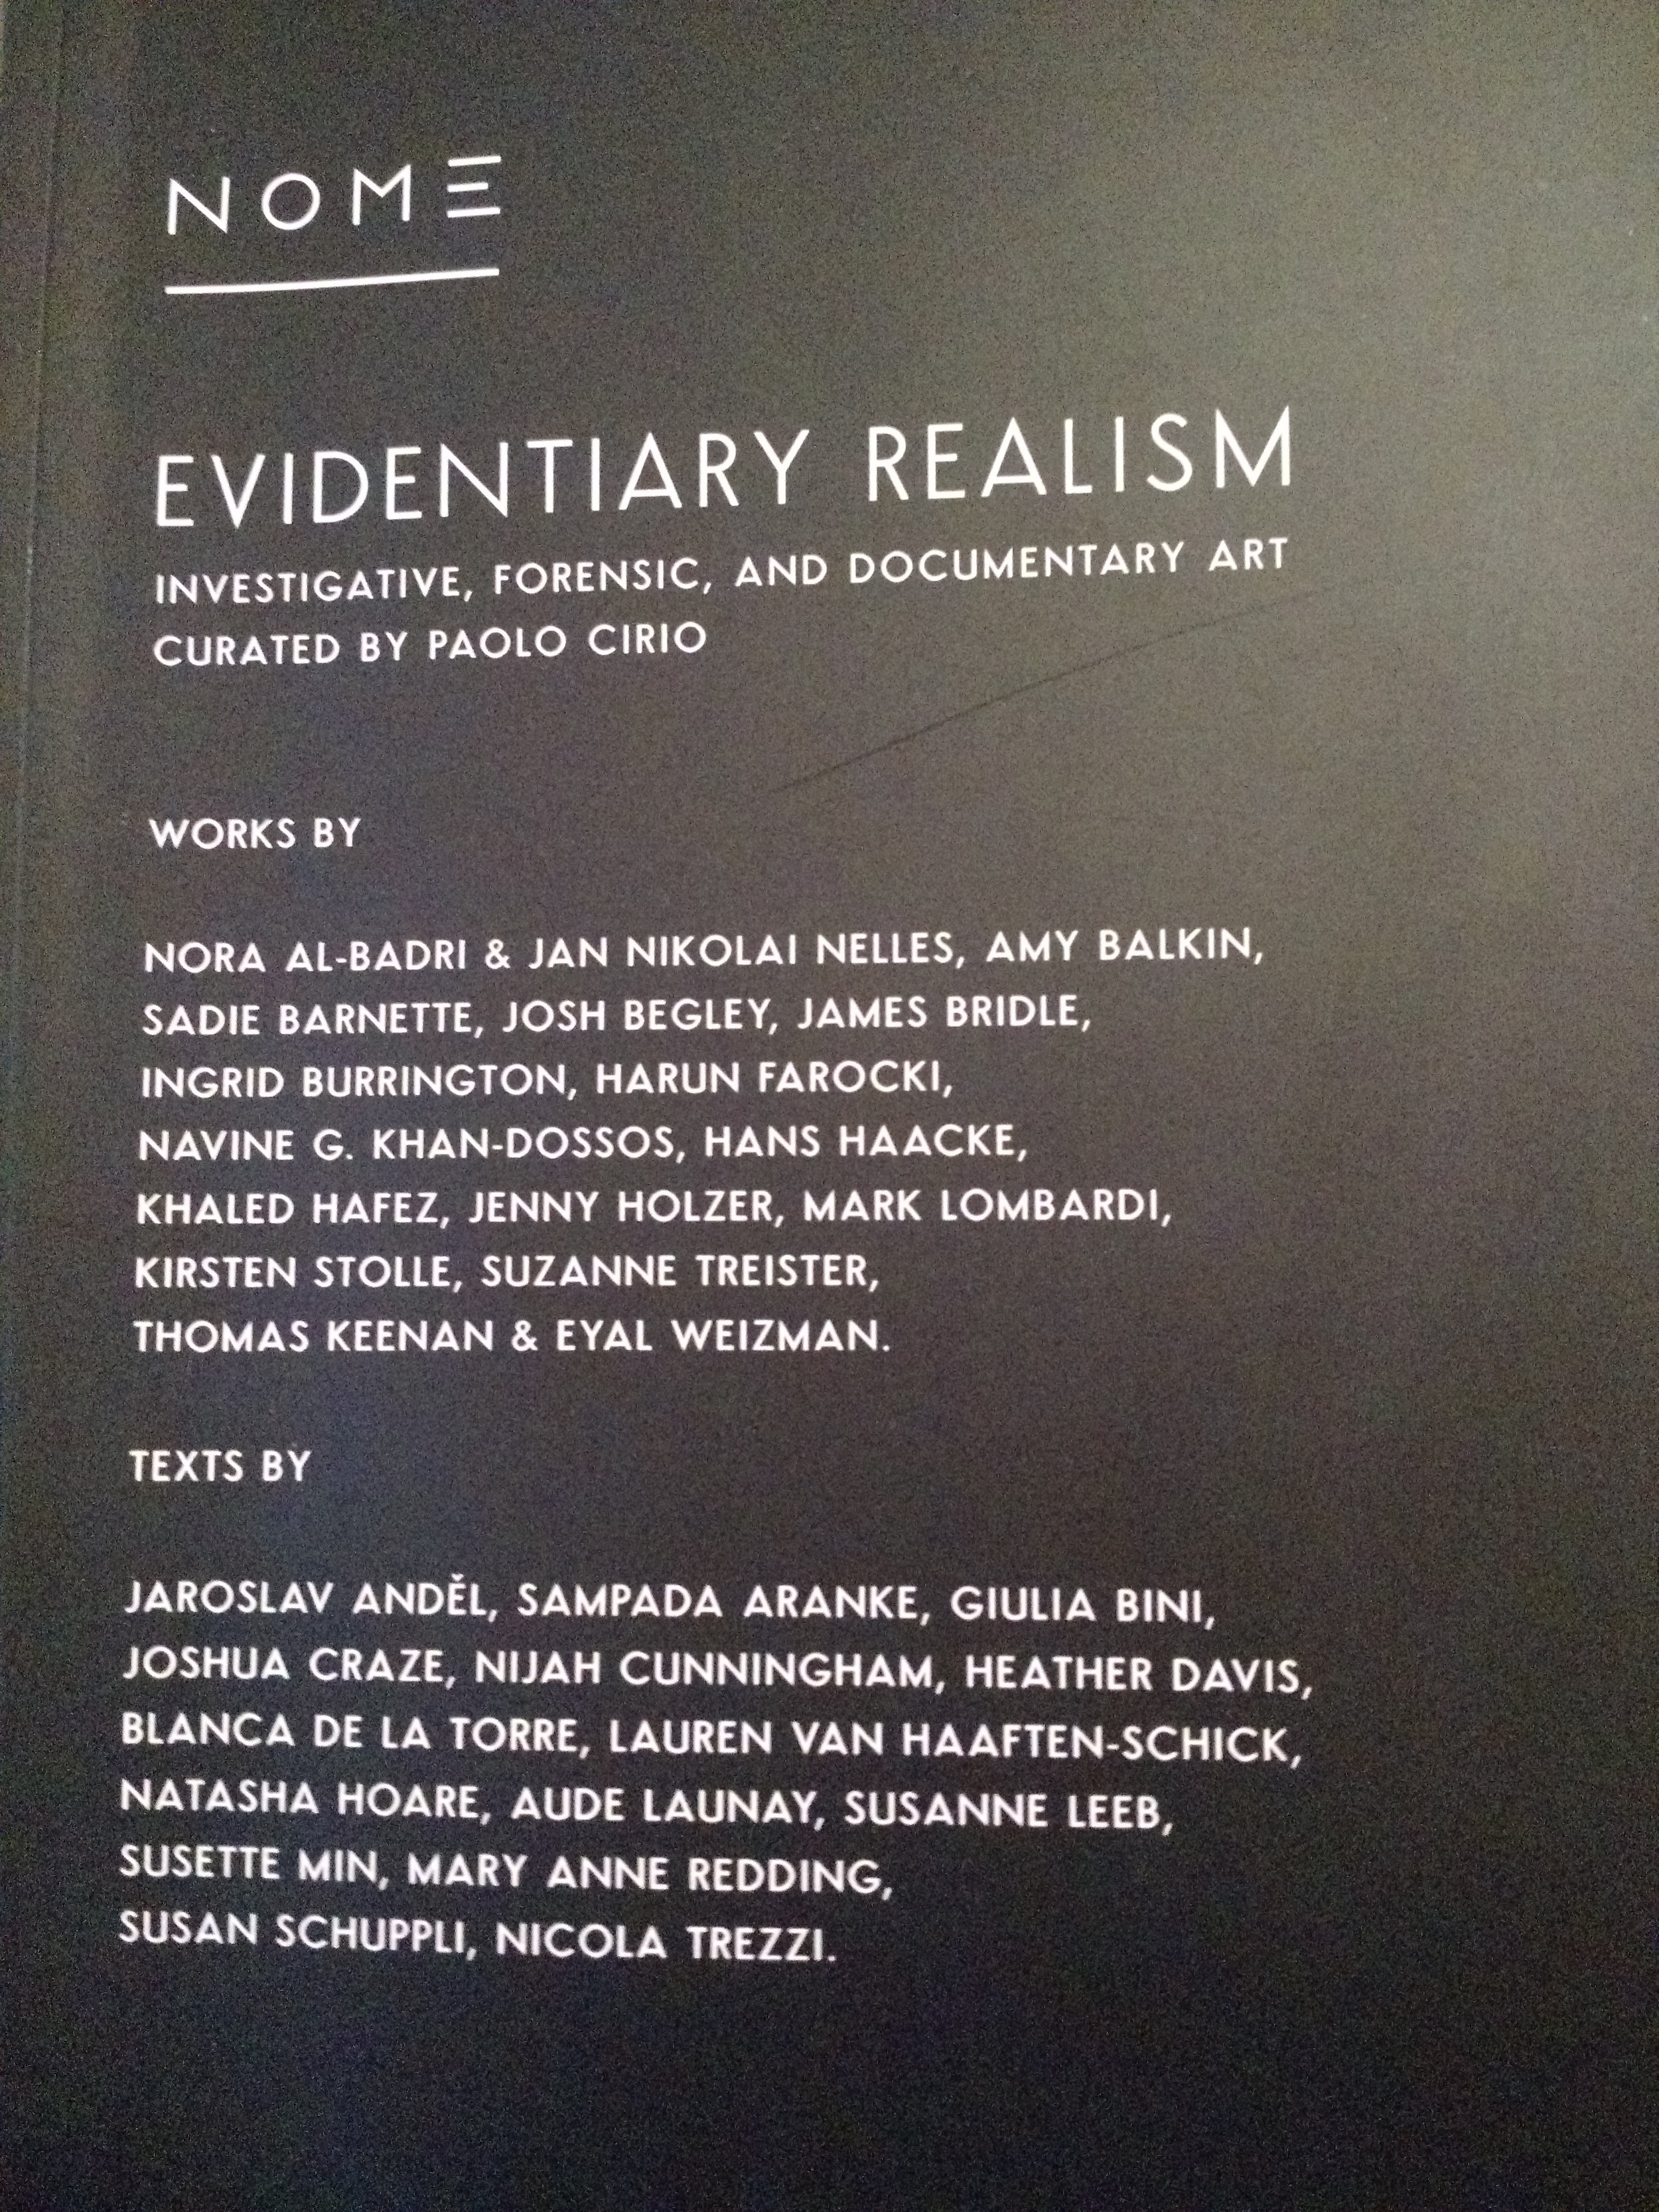 Evidentiary Realism Collective Show   catalog, NOME Gallery, Berlin. Curated by Paolo Cirio. Catalog  essay  by Mary Anne Redding. December 2 - February 17, 2018.